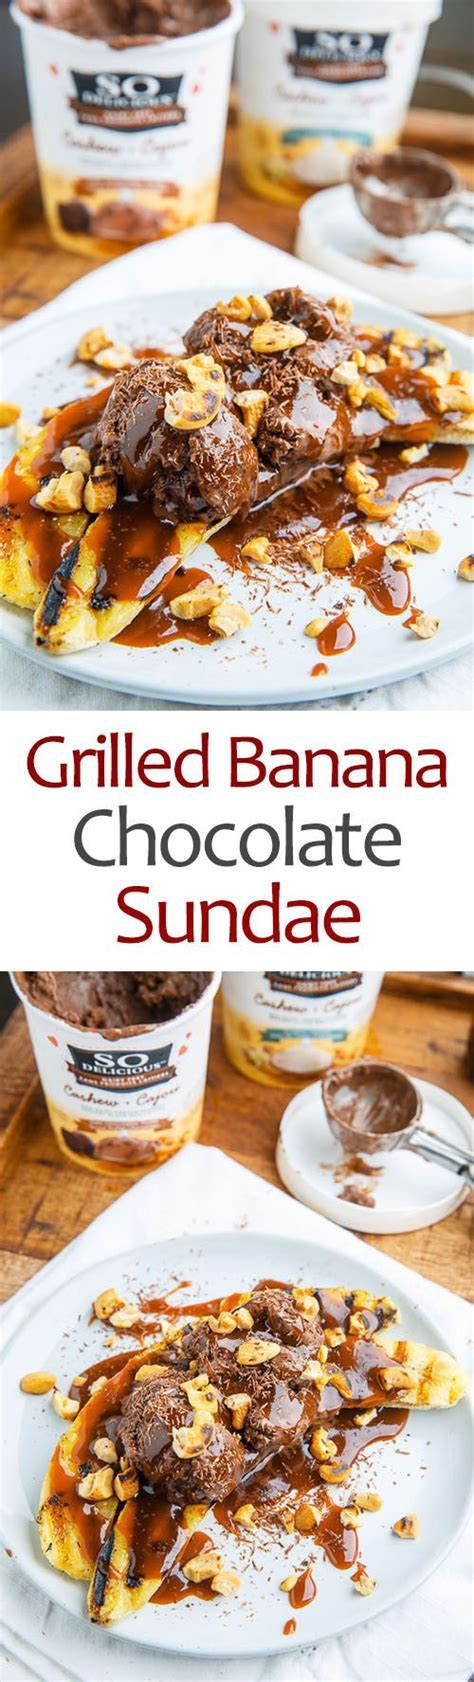 grilled bananas and pineapple with grilled pineapple and banana sundaes with caramel sauce and cashews recipe sauces grilled